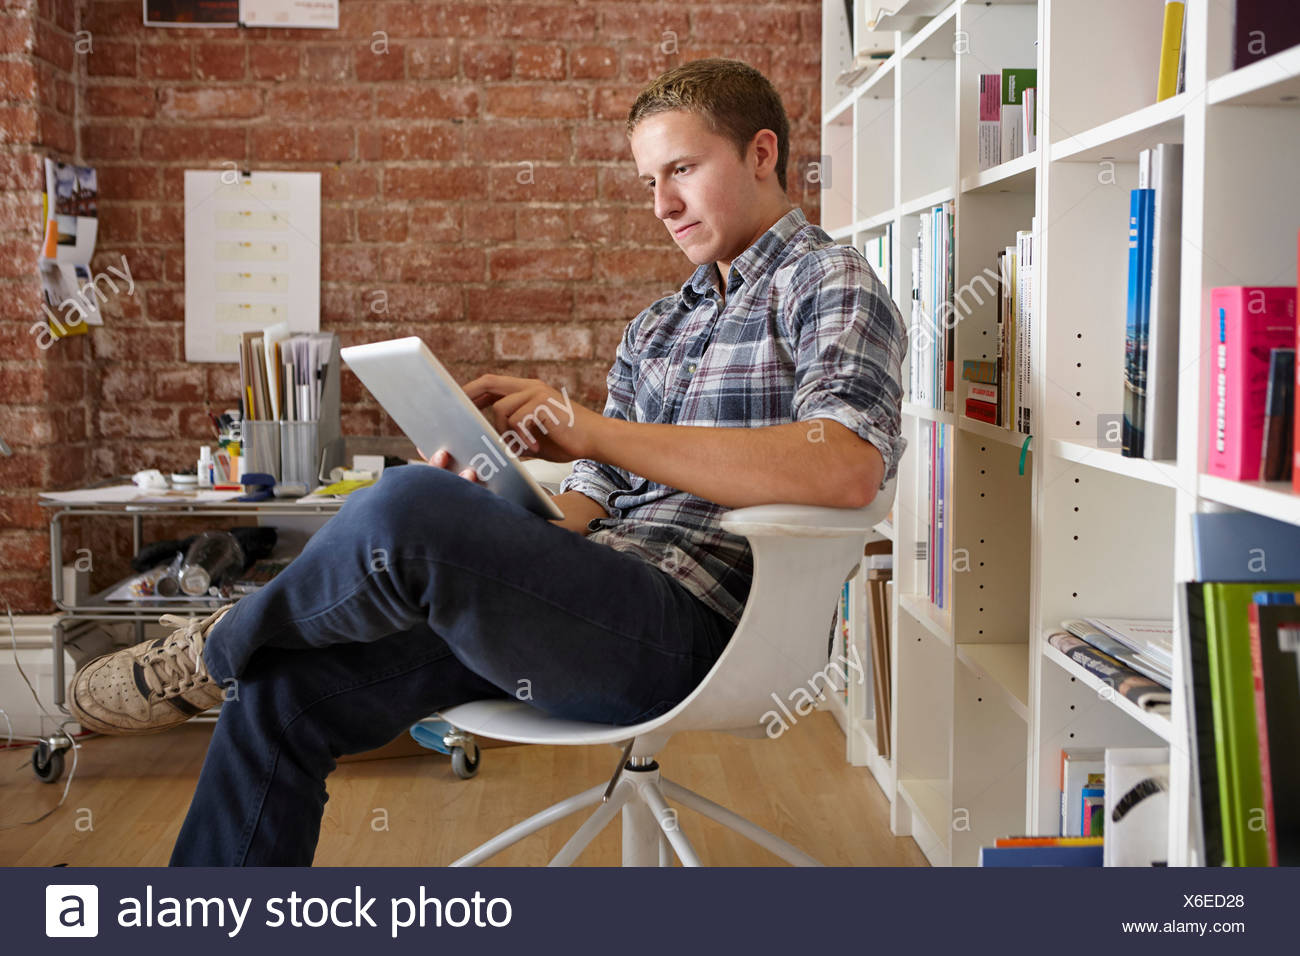 Young man sitting on chair using digital tablet - Stock Image